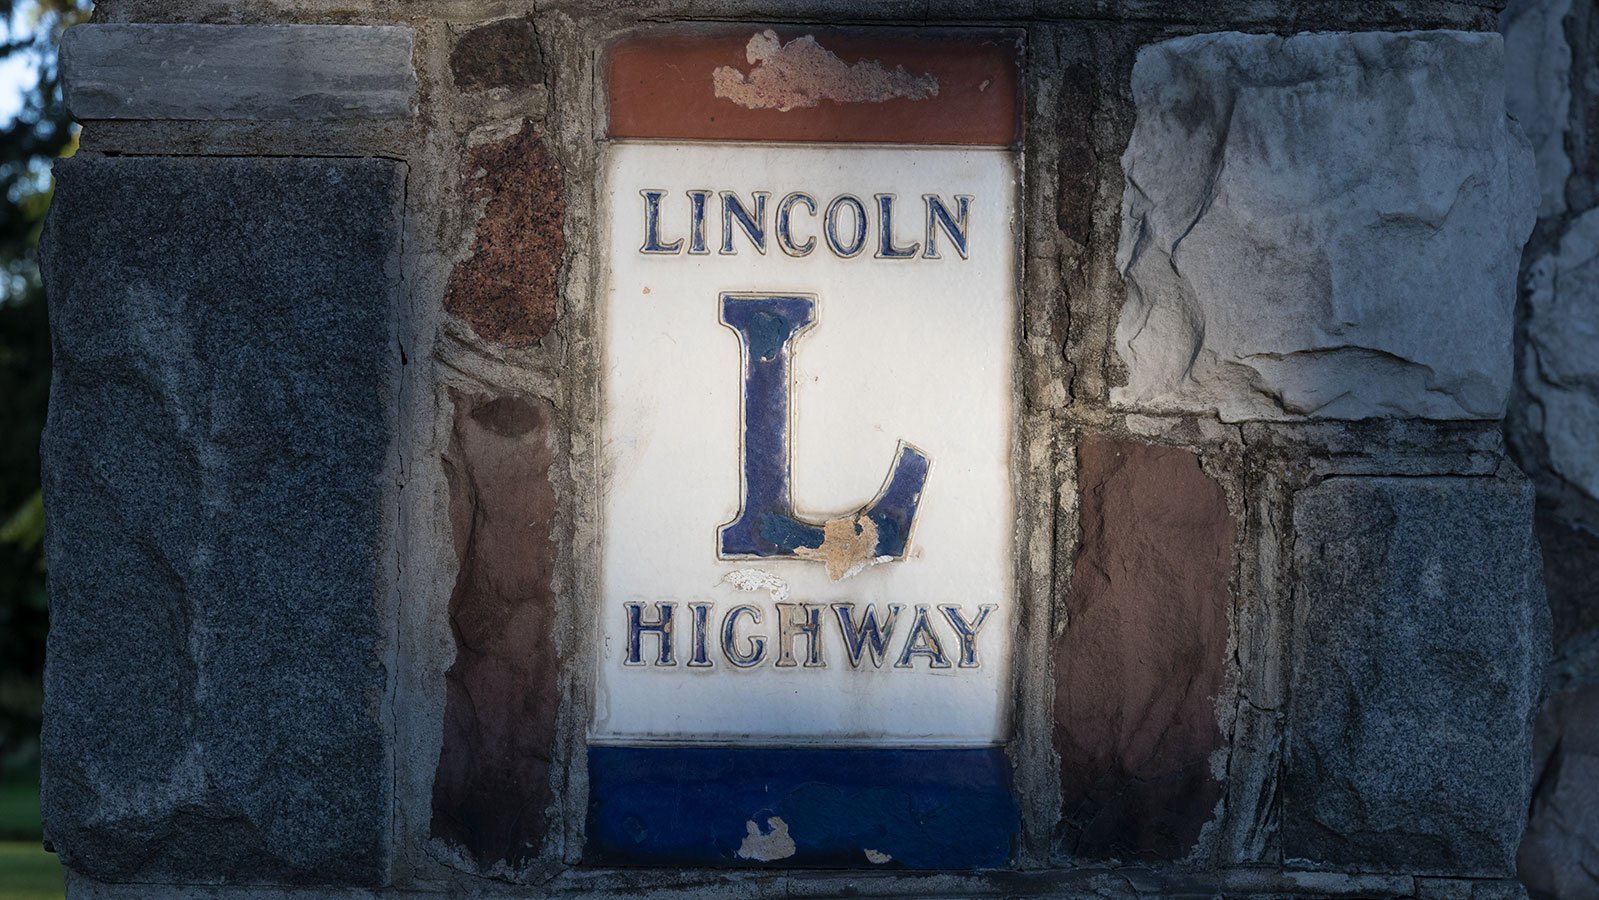 Lincoln Highway emblem embedded in the Hopley Monument in Bucyrus